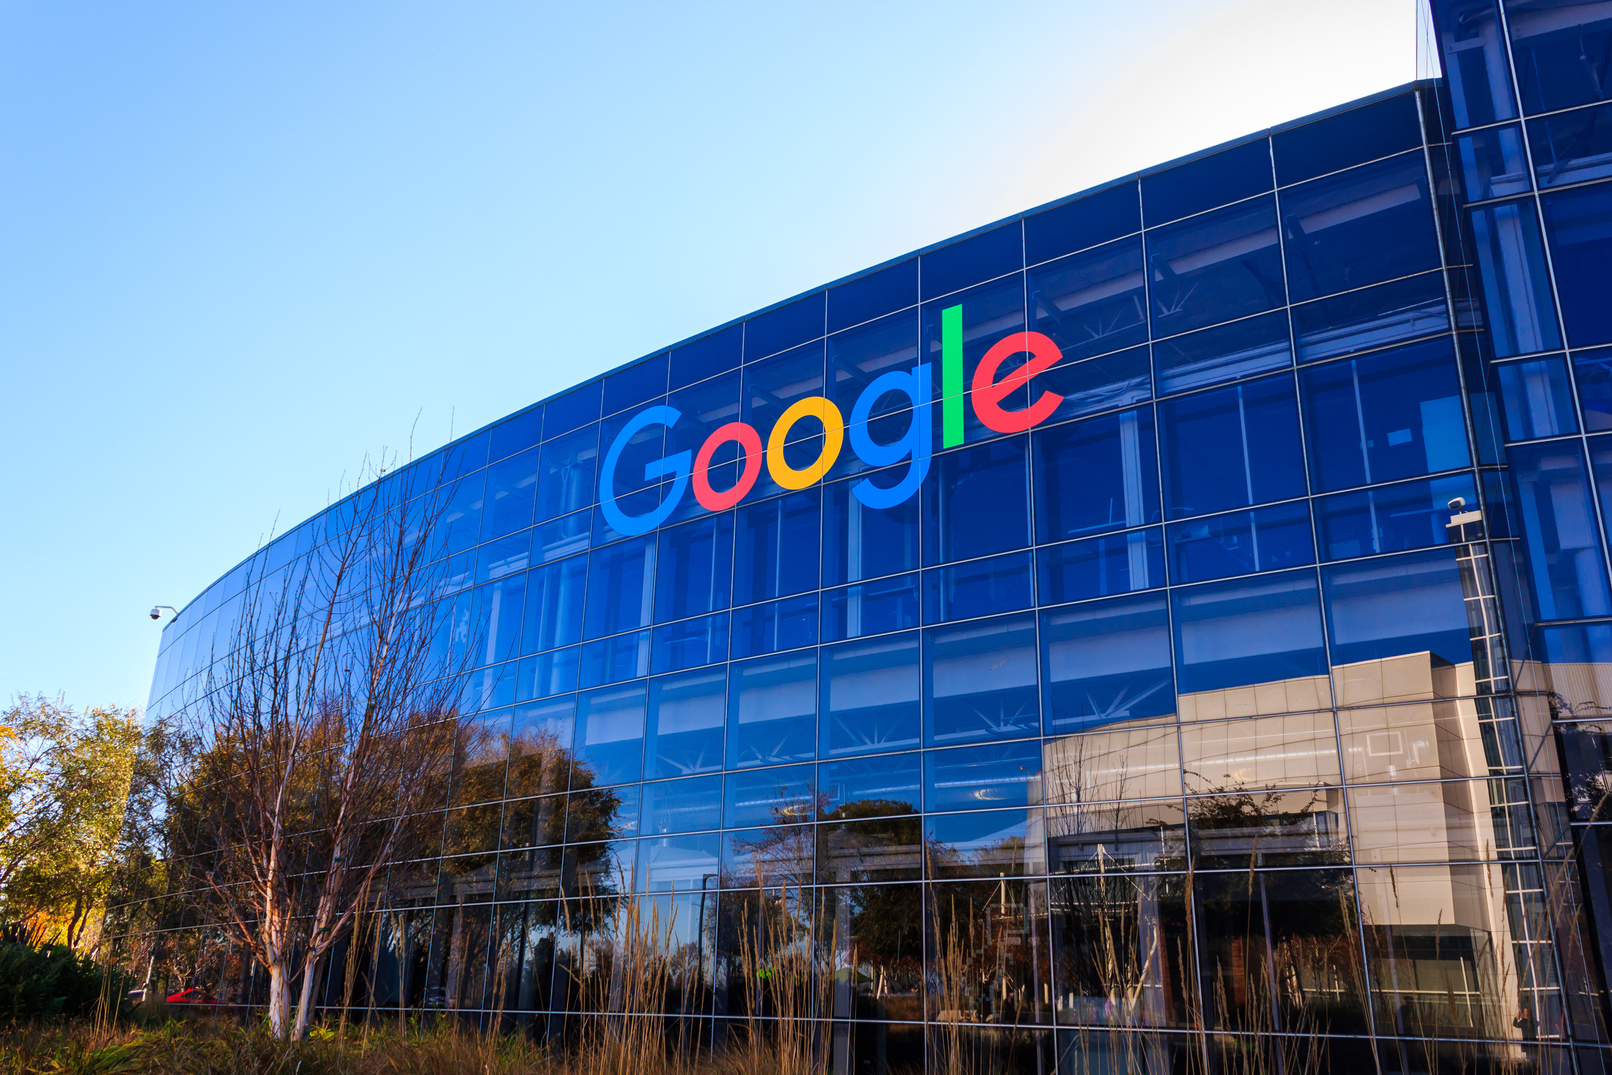 Google Agrees to Settle Age Discrimination Class Action for $11 Million